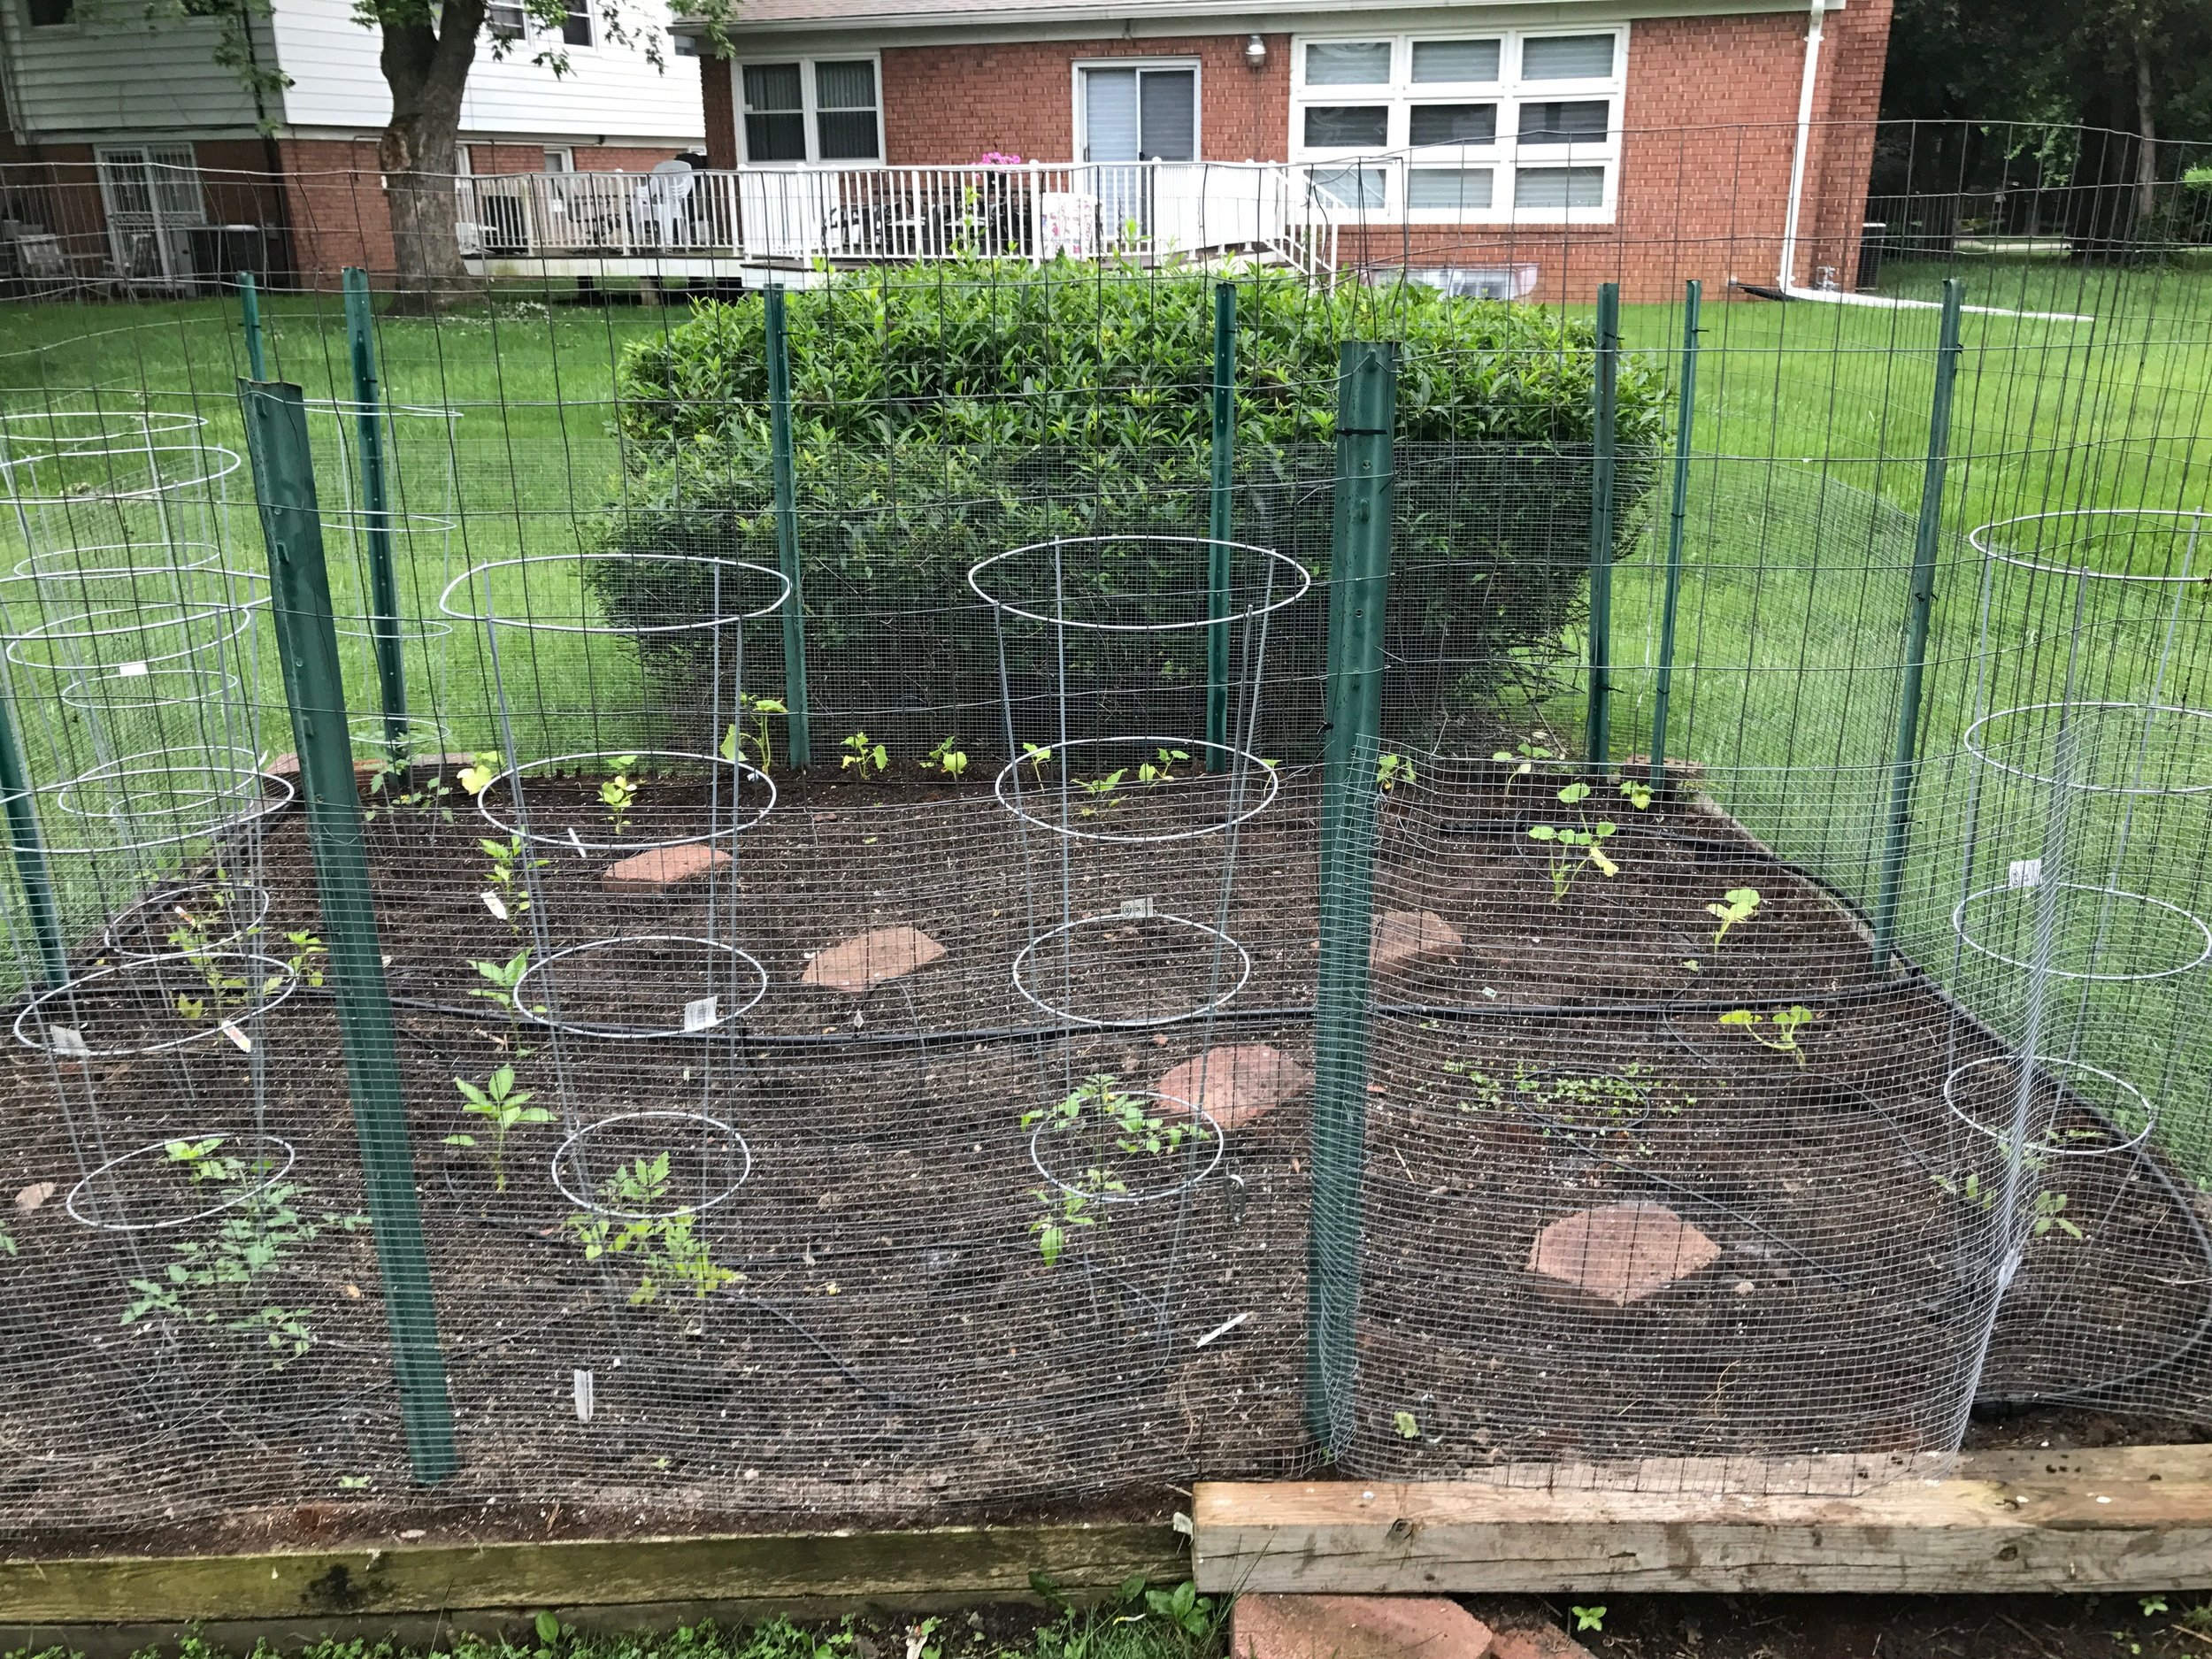 After - fresh planting